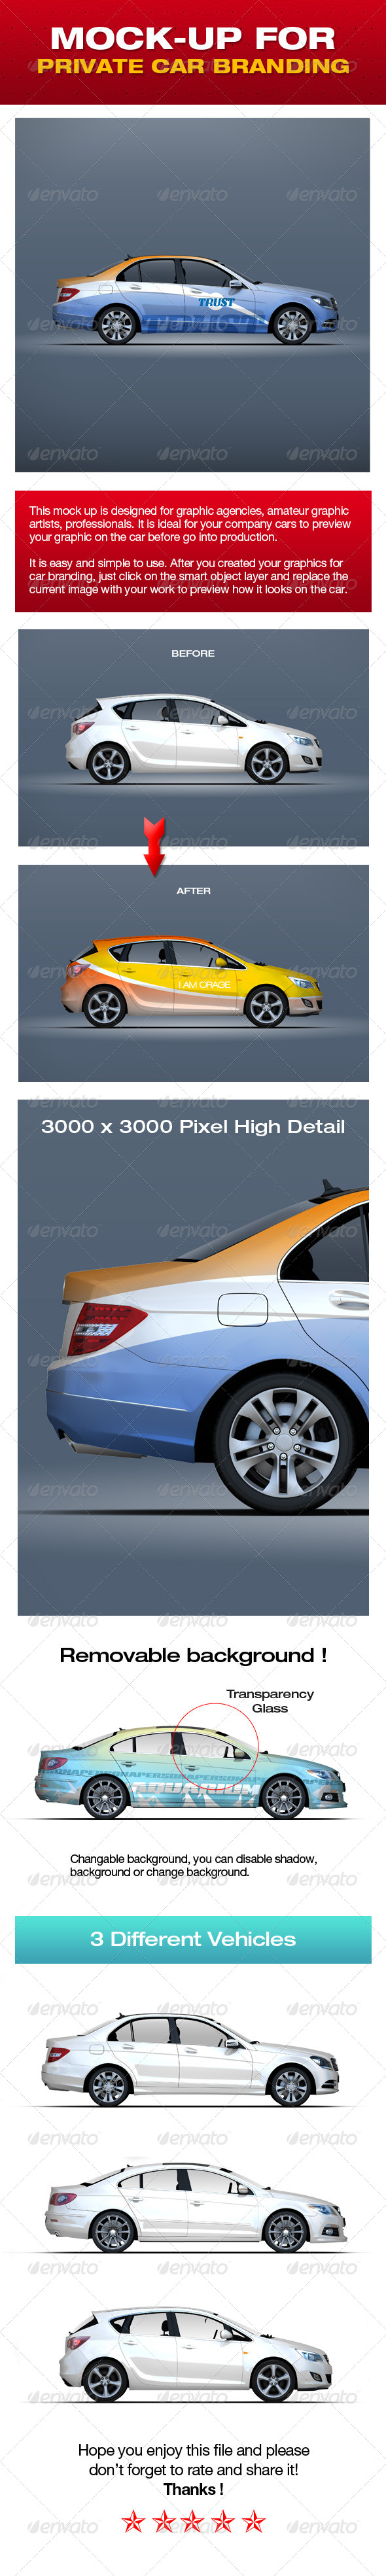 GraphicRiver Mock-up For Private Car Branding 5310163